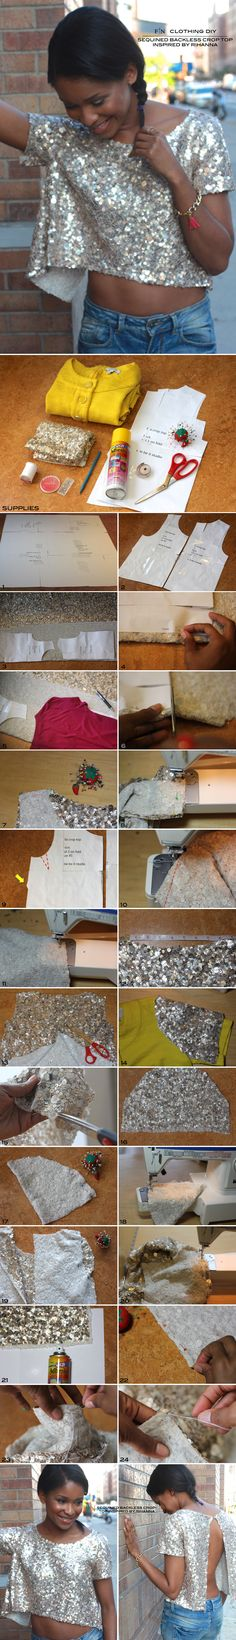 FRUGAL-NOMICS.COM DIY :: Sequin Backless Croptop Inspired by #Rihanna #diy #sequins